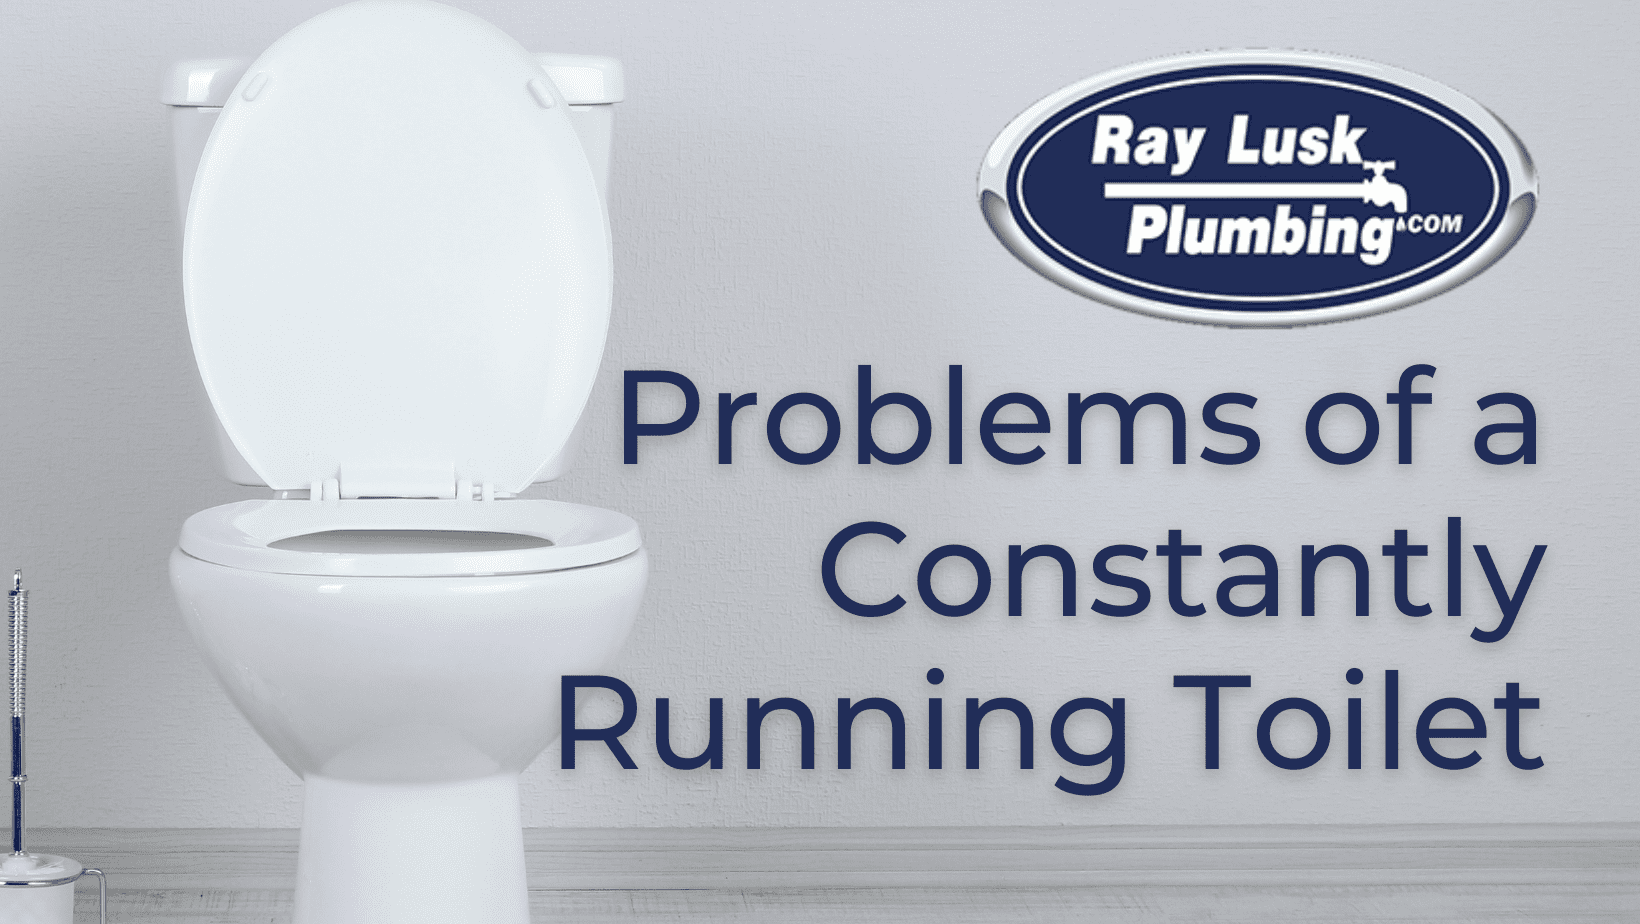 """Image of a toilet. Image text reads """"Problems of a constantly running toilet"""""""